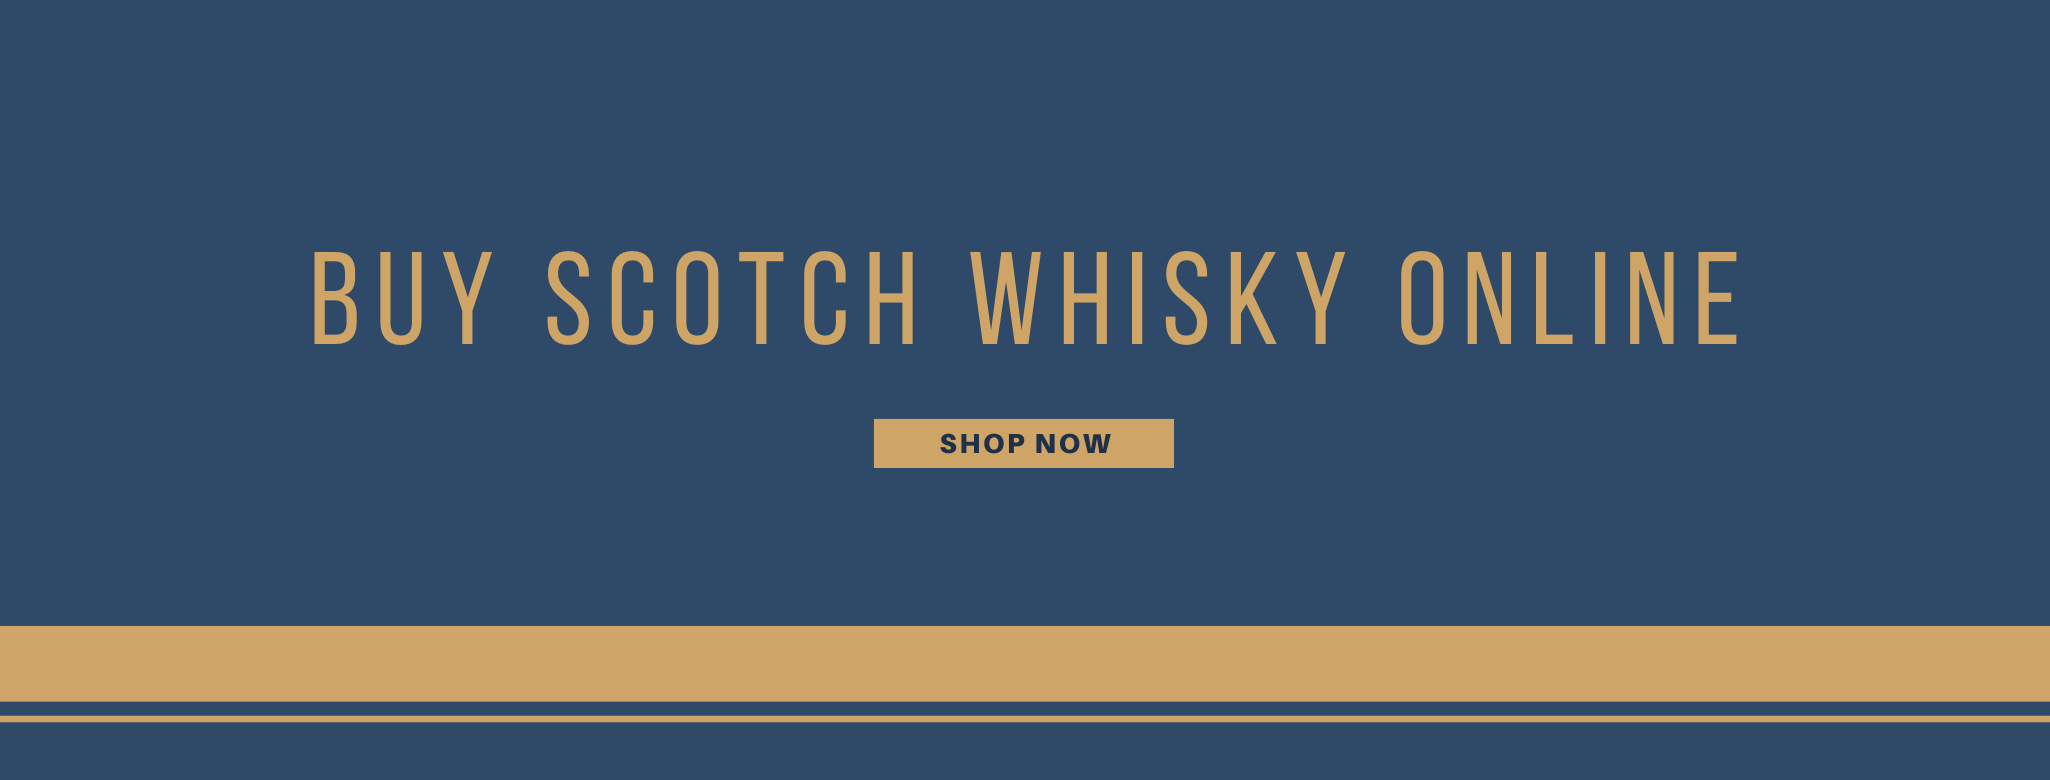 Buy scotch whisky online banner